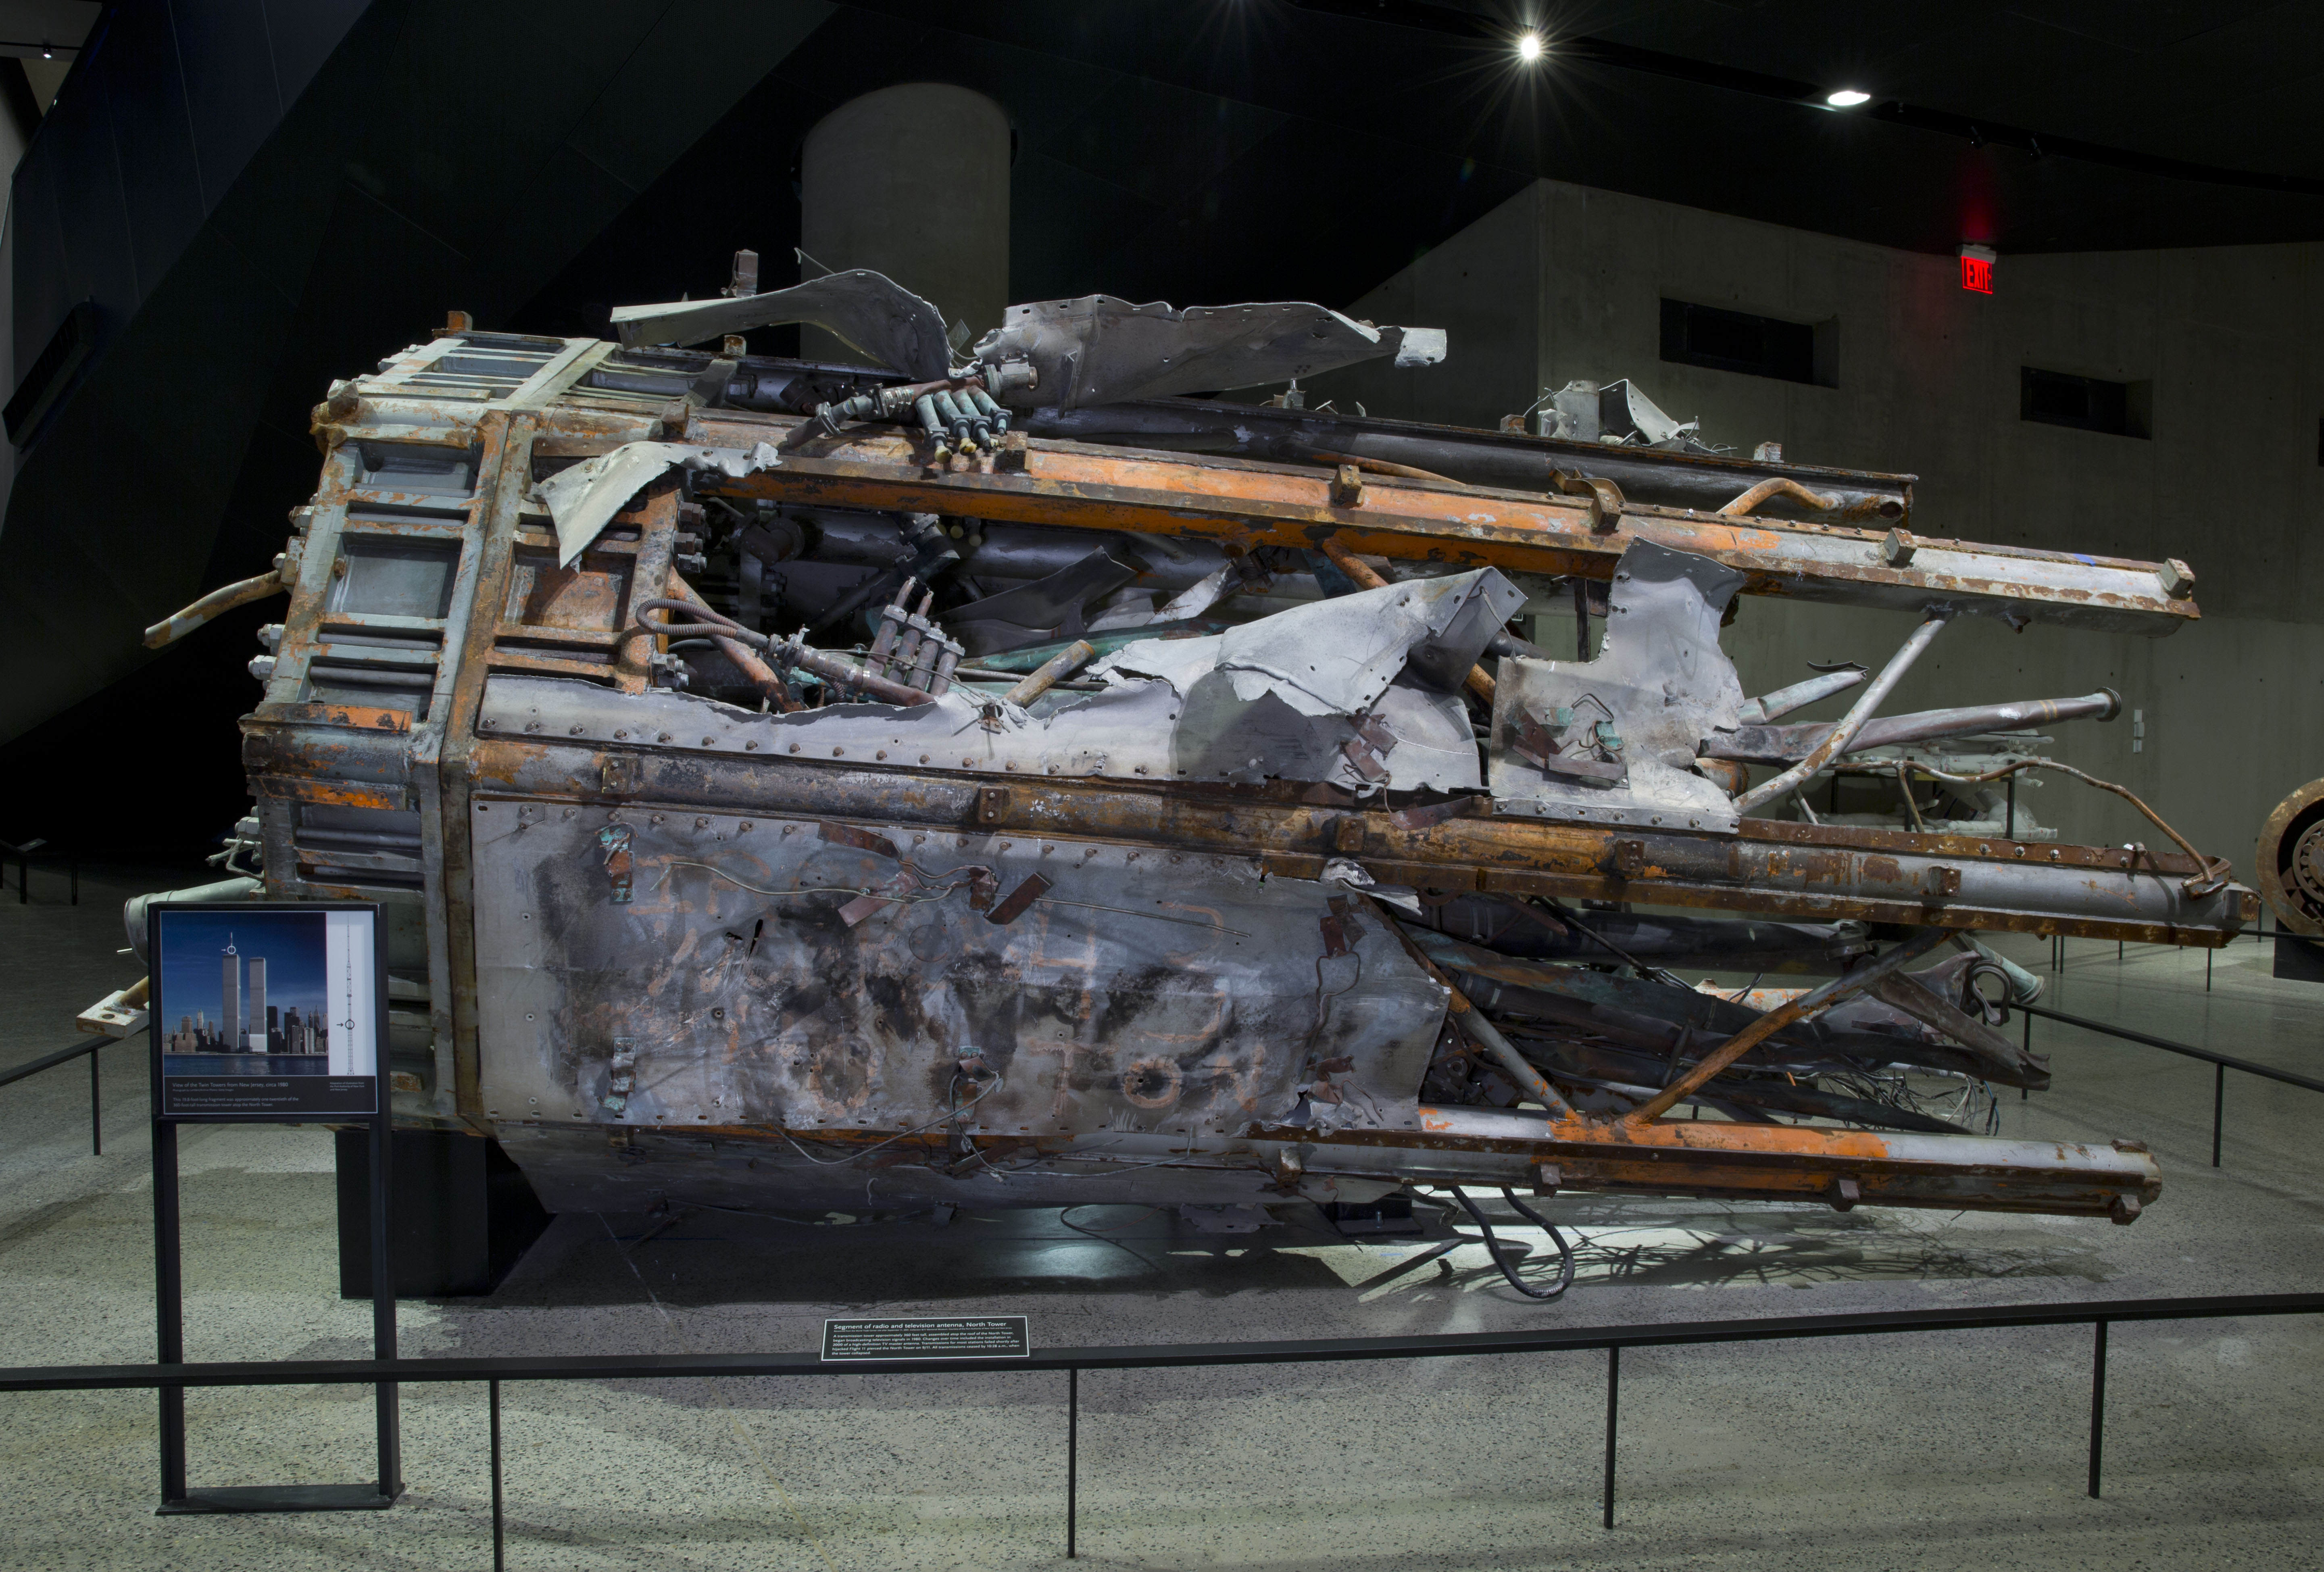 Part of the antenna from the top of the North Tower of the World Trade Center, destroyed on 9/11. - Photo Courtesy of 9/11 Memorial & Museum